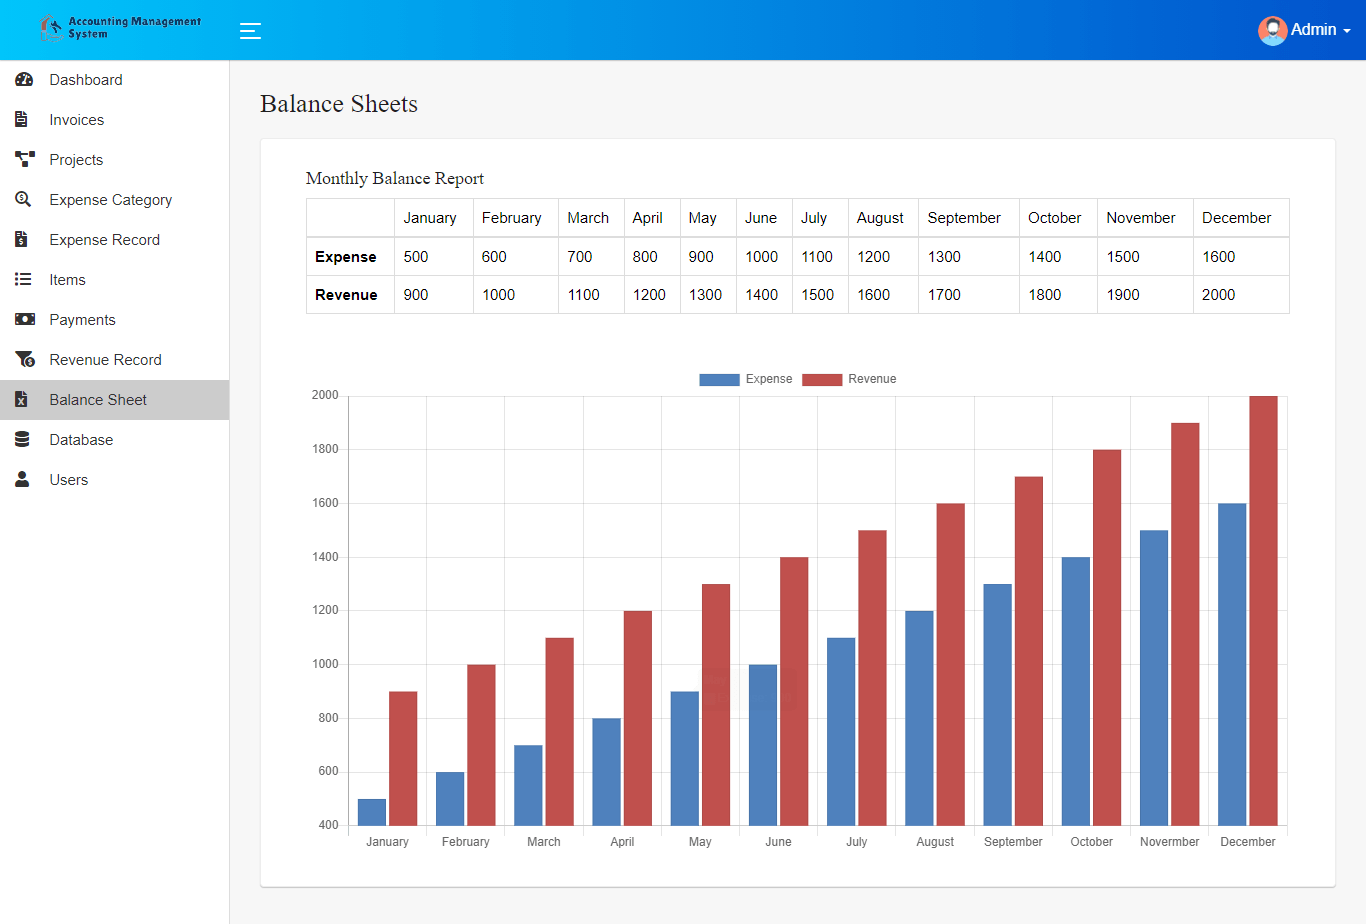 Accounting Management System Free Template - Balance Sheet